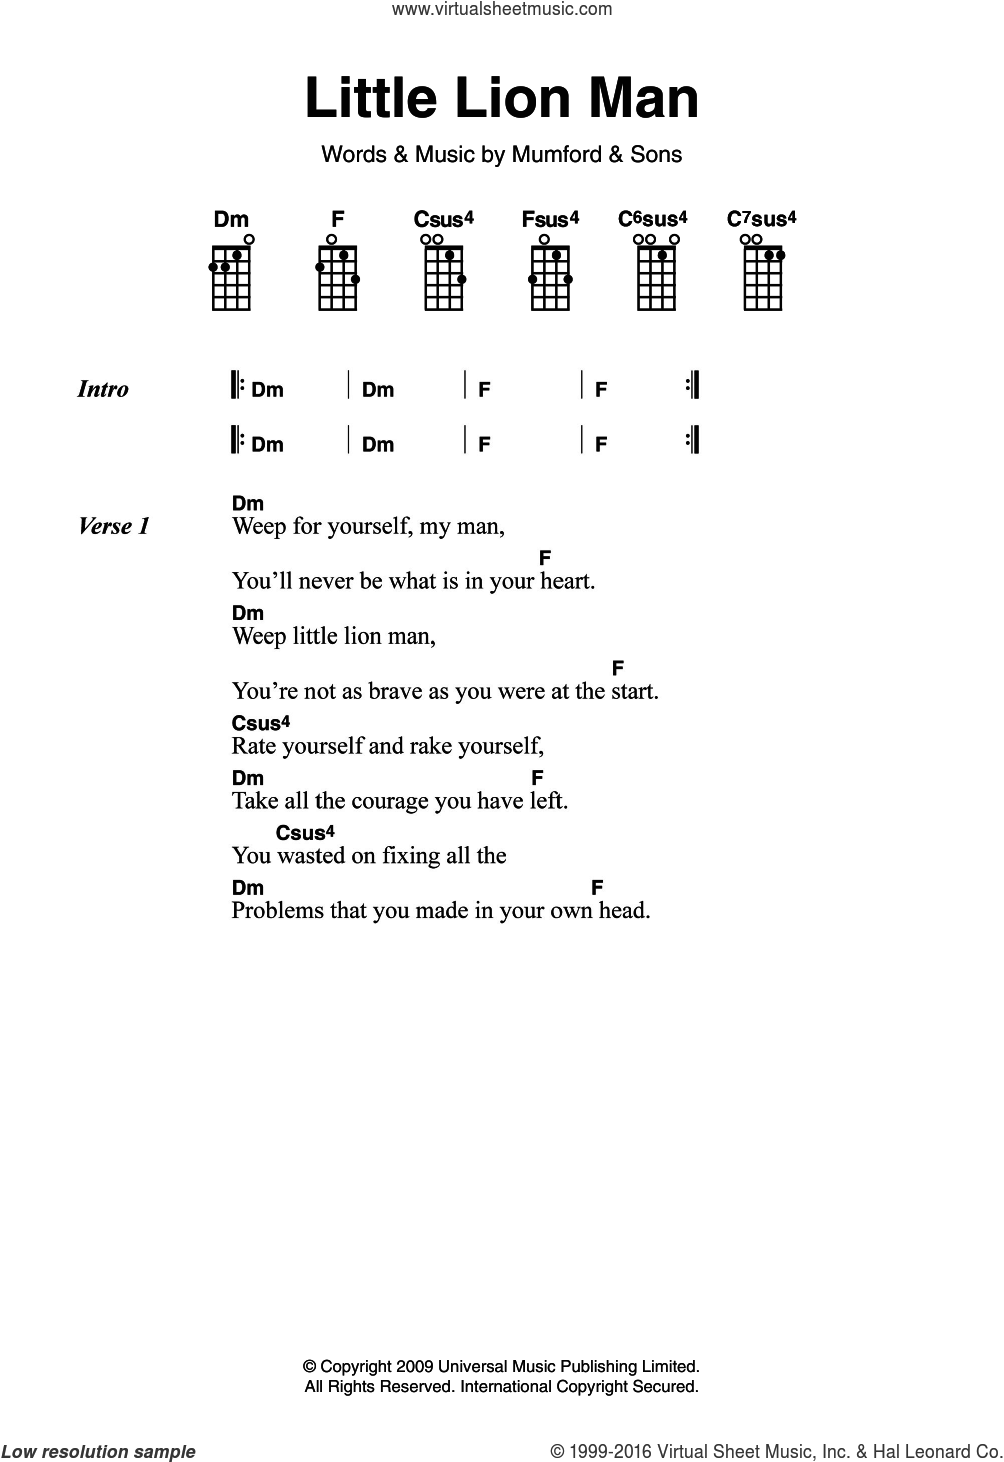 Little Lion Man sheet music for voice, piano or guitar by Mumford & Sons. Score Image Preview.